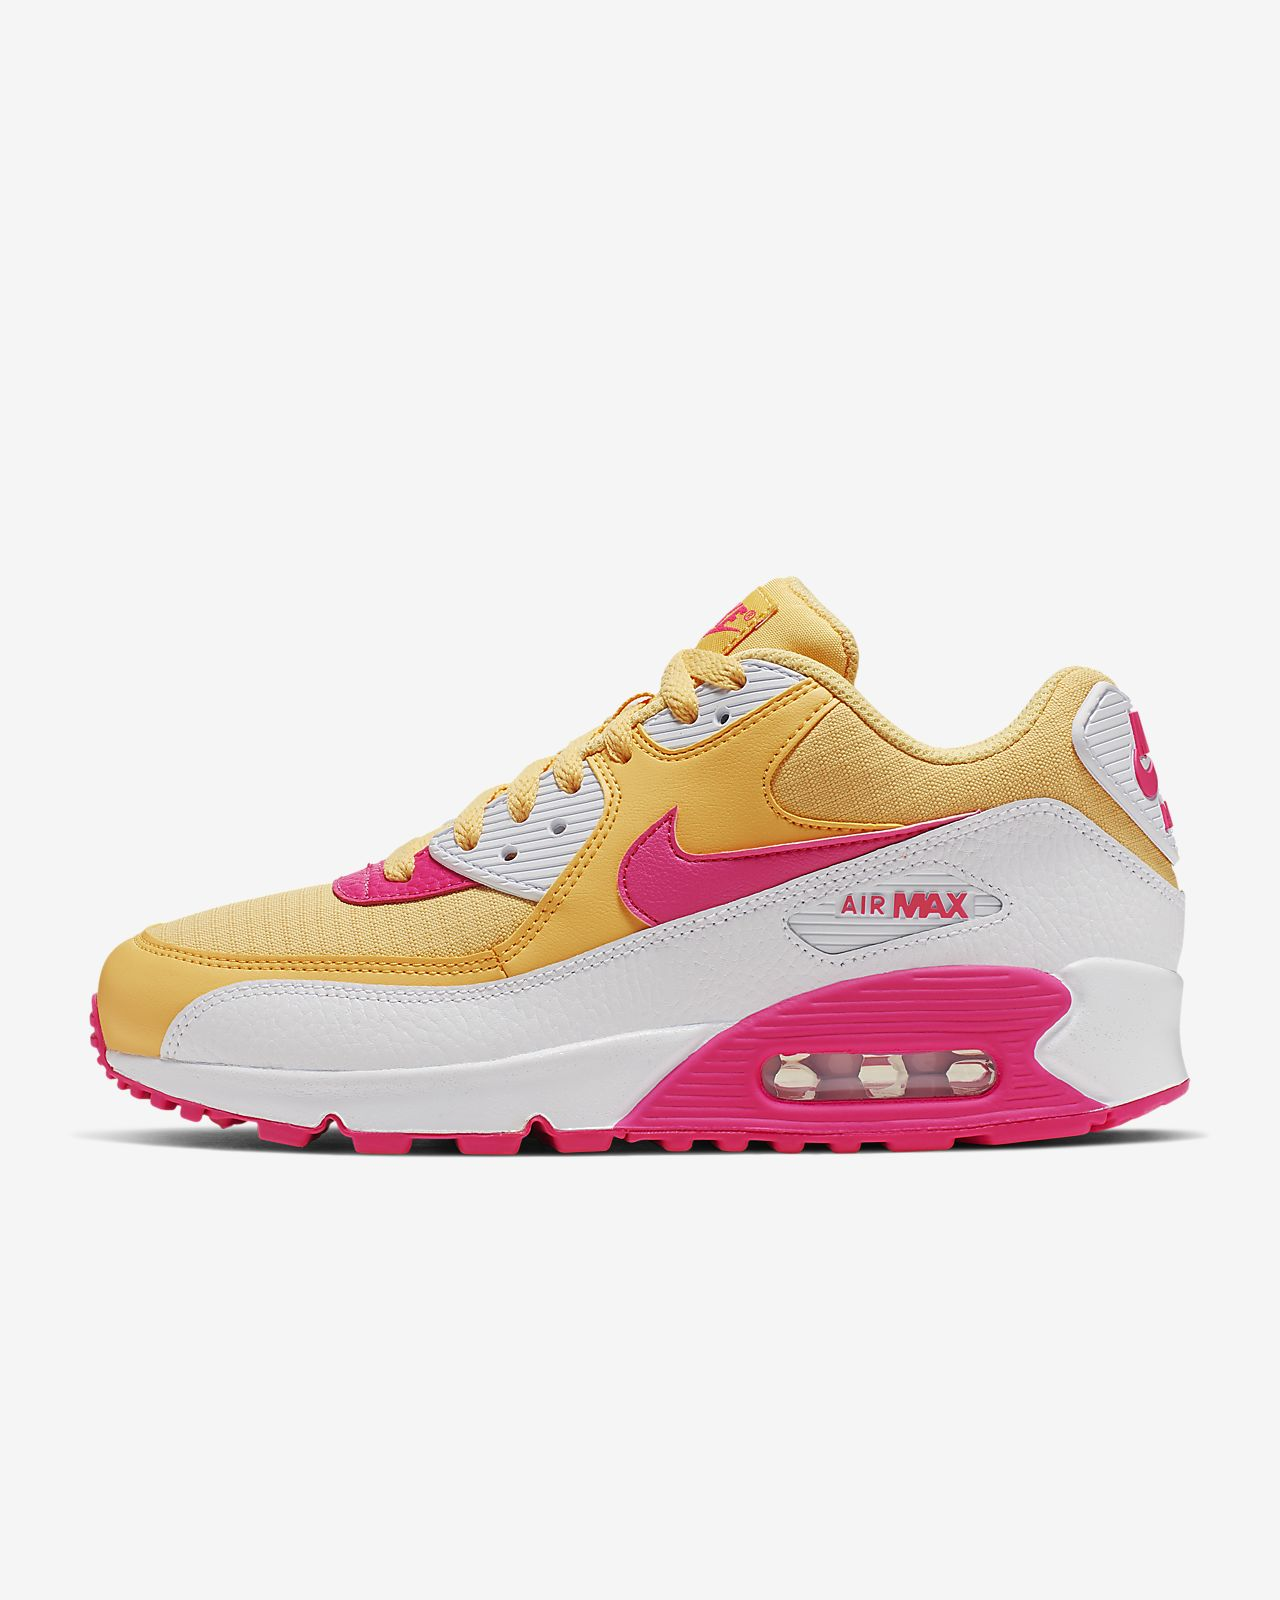 new products 023e6 74a32 Nike Air Max 90 Women s Shoe. Nike.com